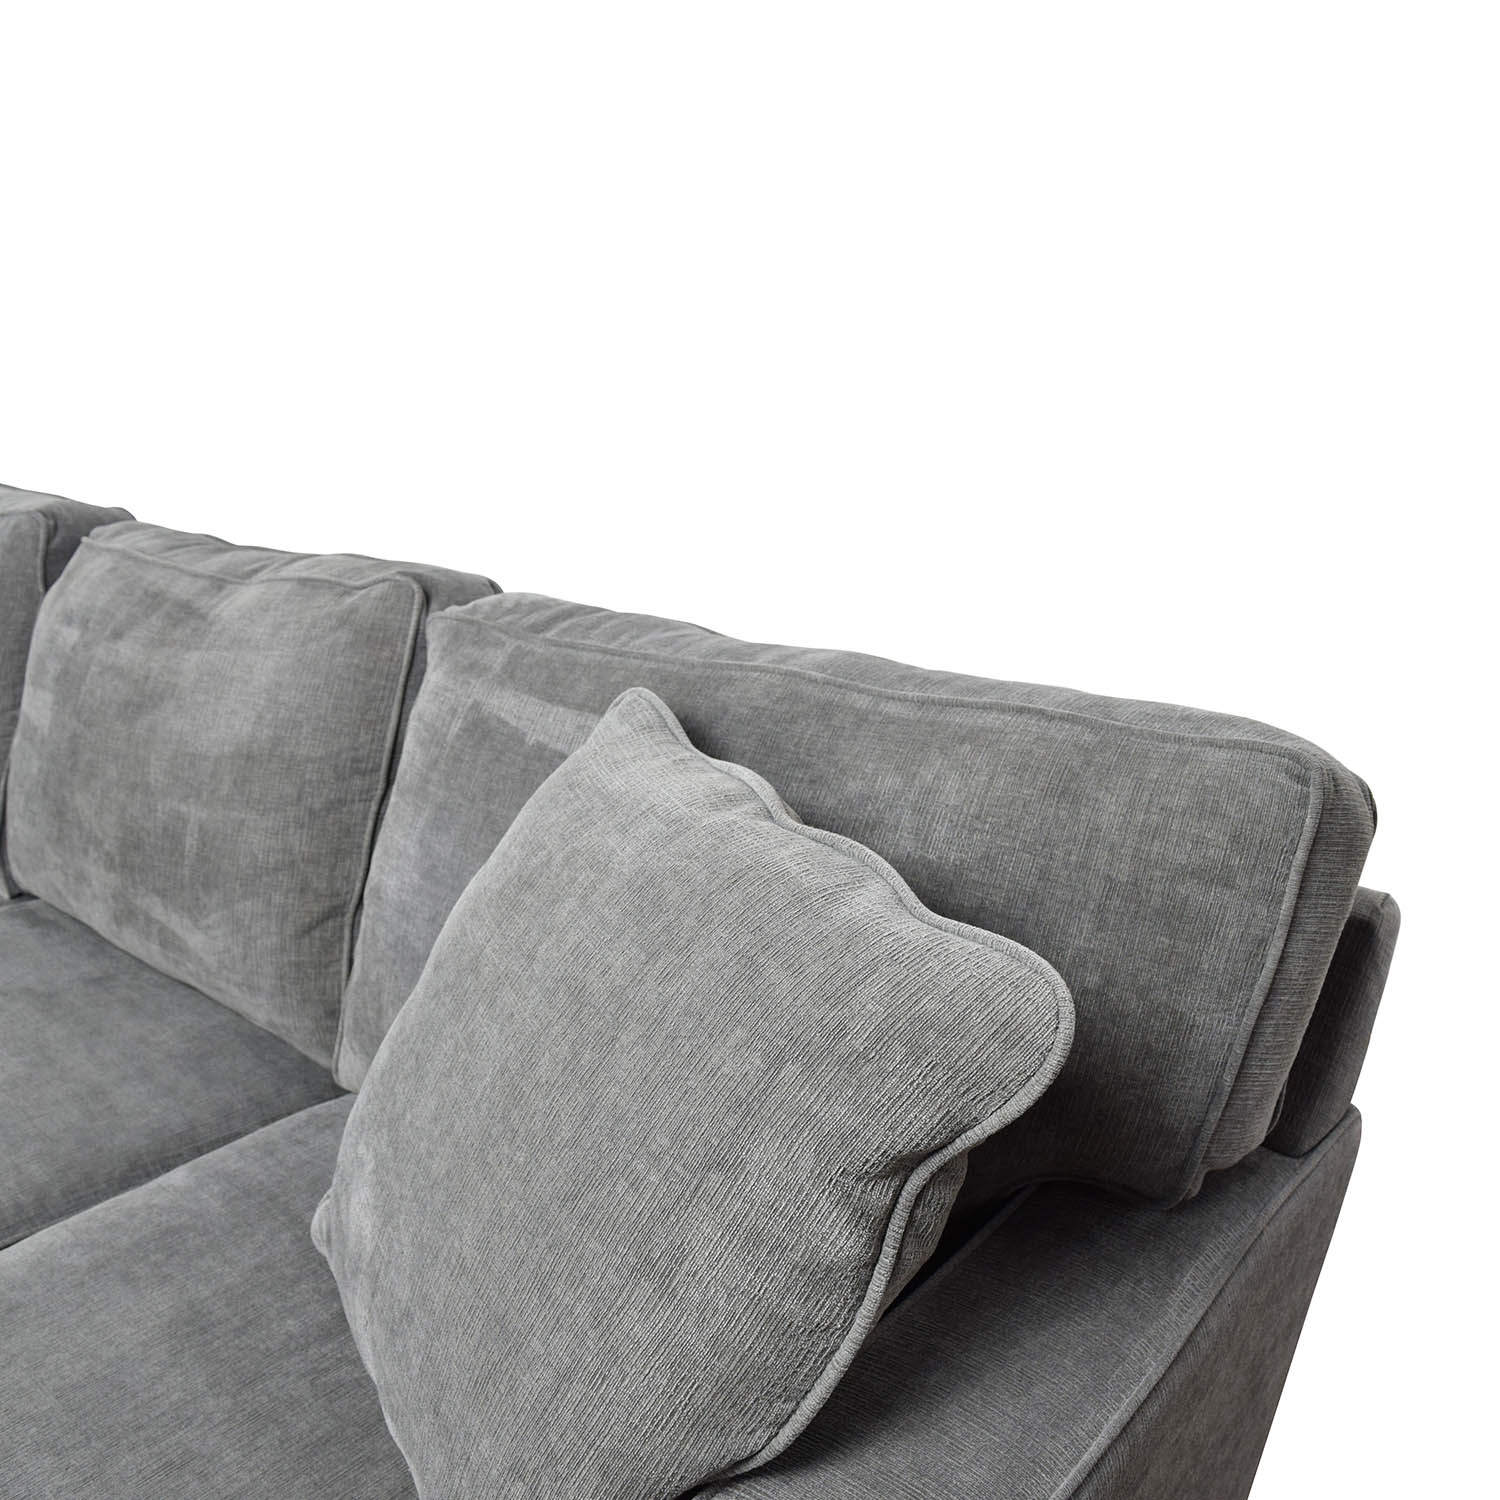 58 Off Macy S Macy S Radley Grey Sofa And Ottoman Sofas